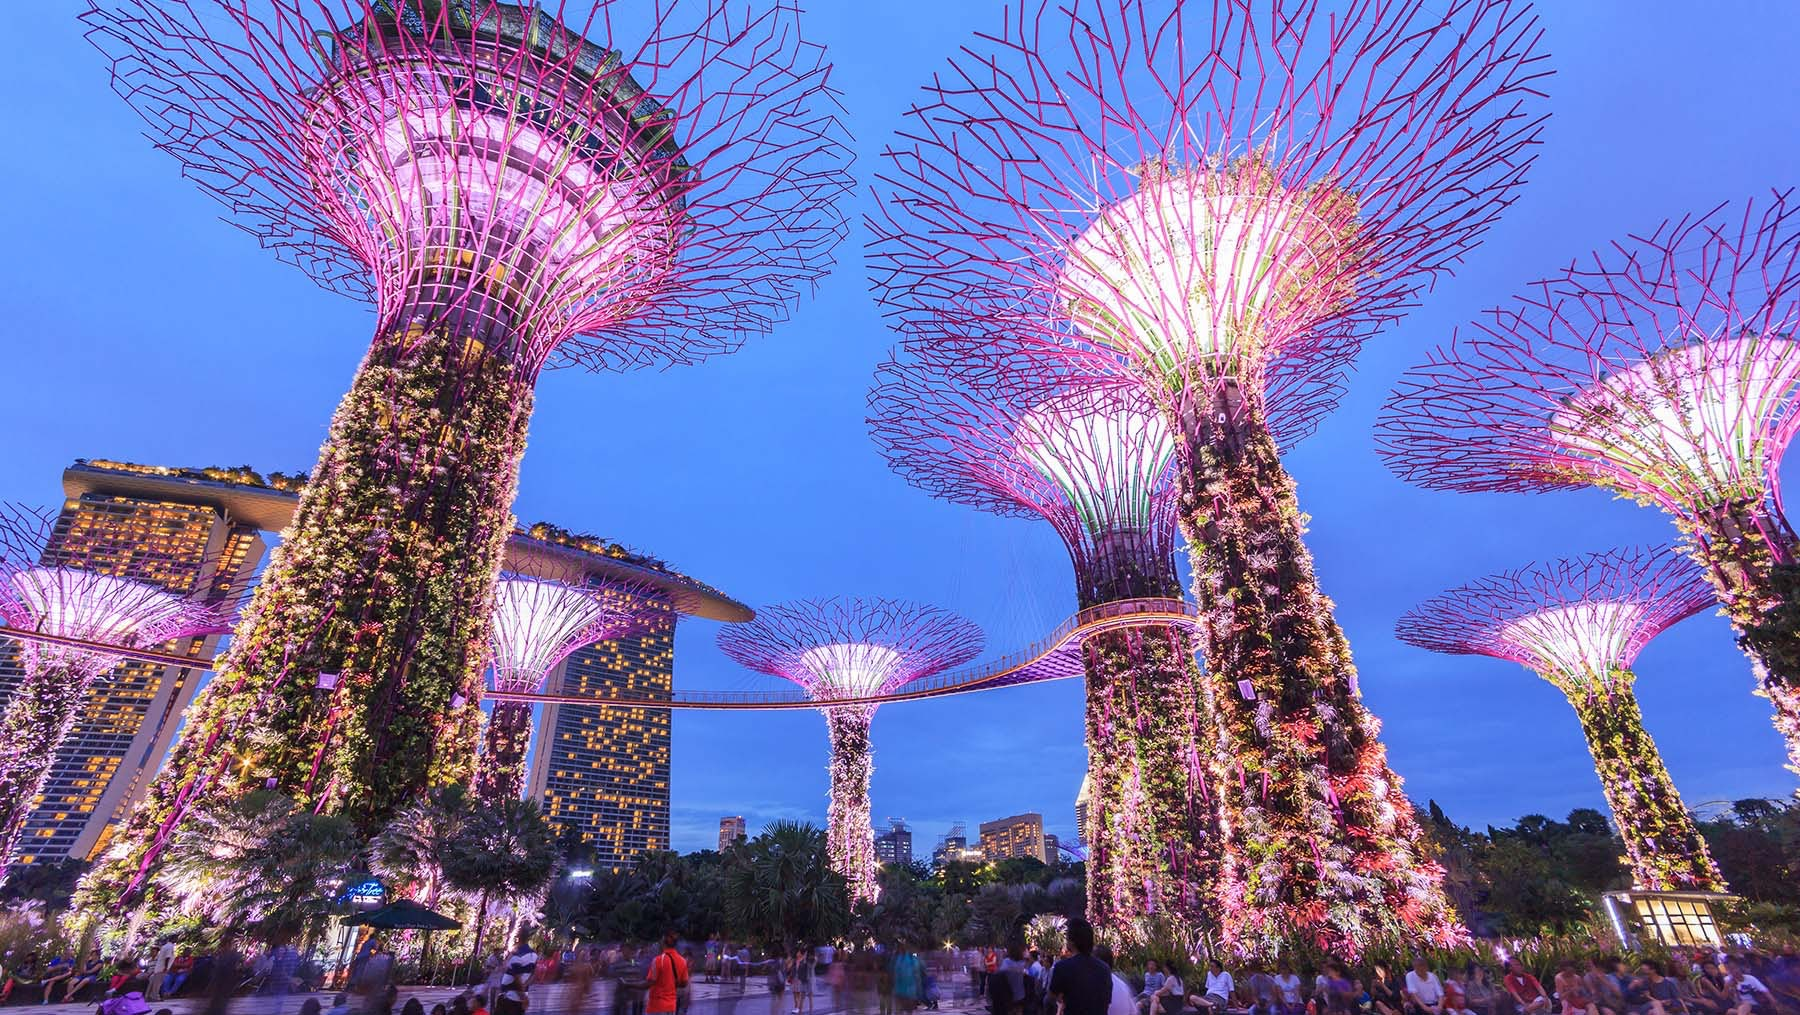 Singapore's Supertree Grove | Source: Shutterstock